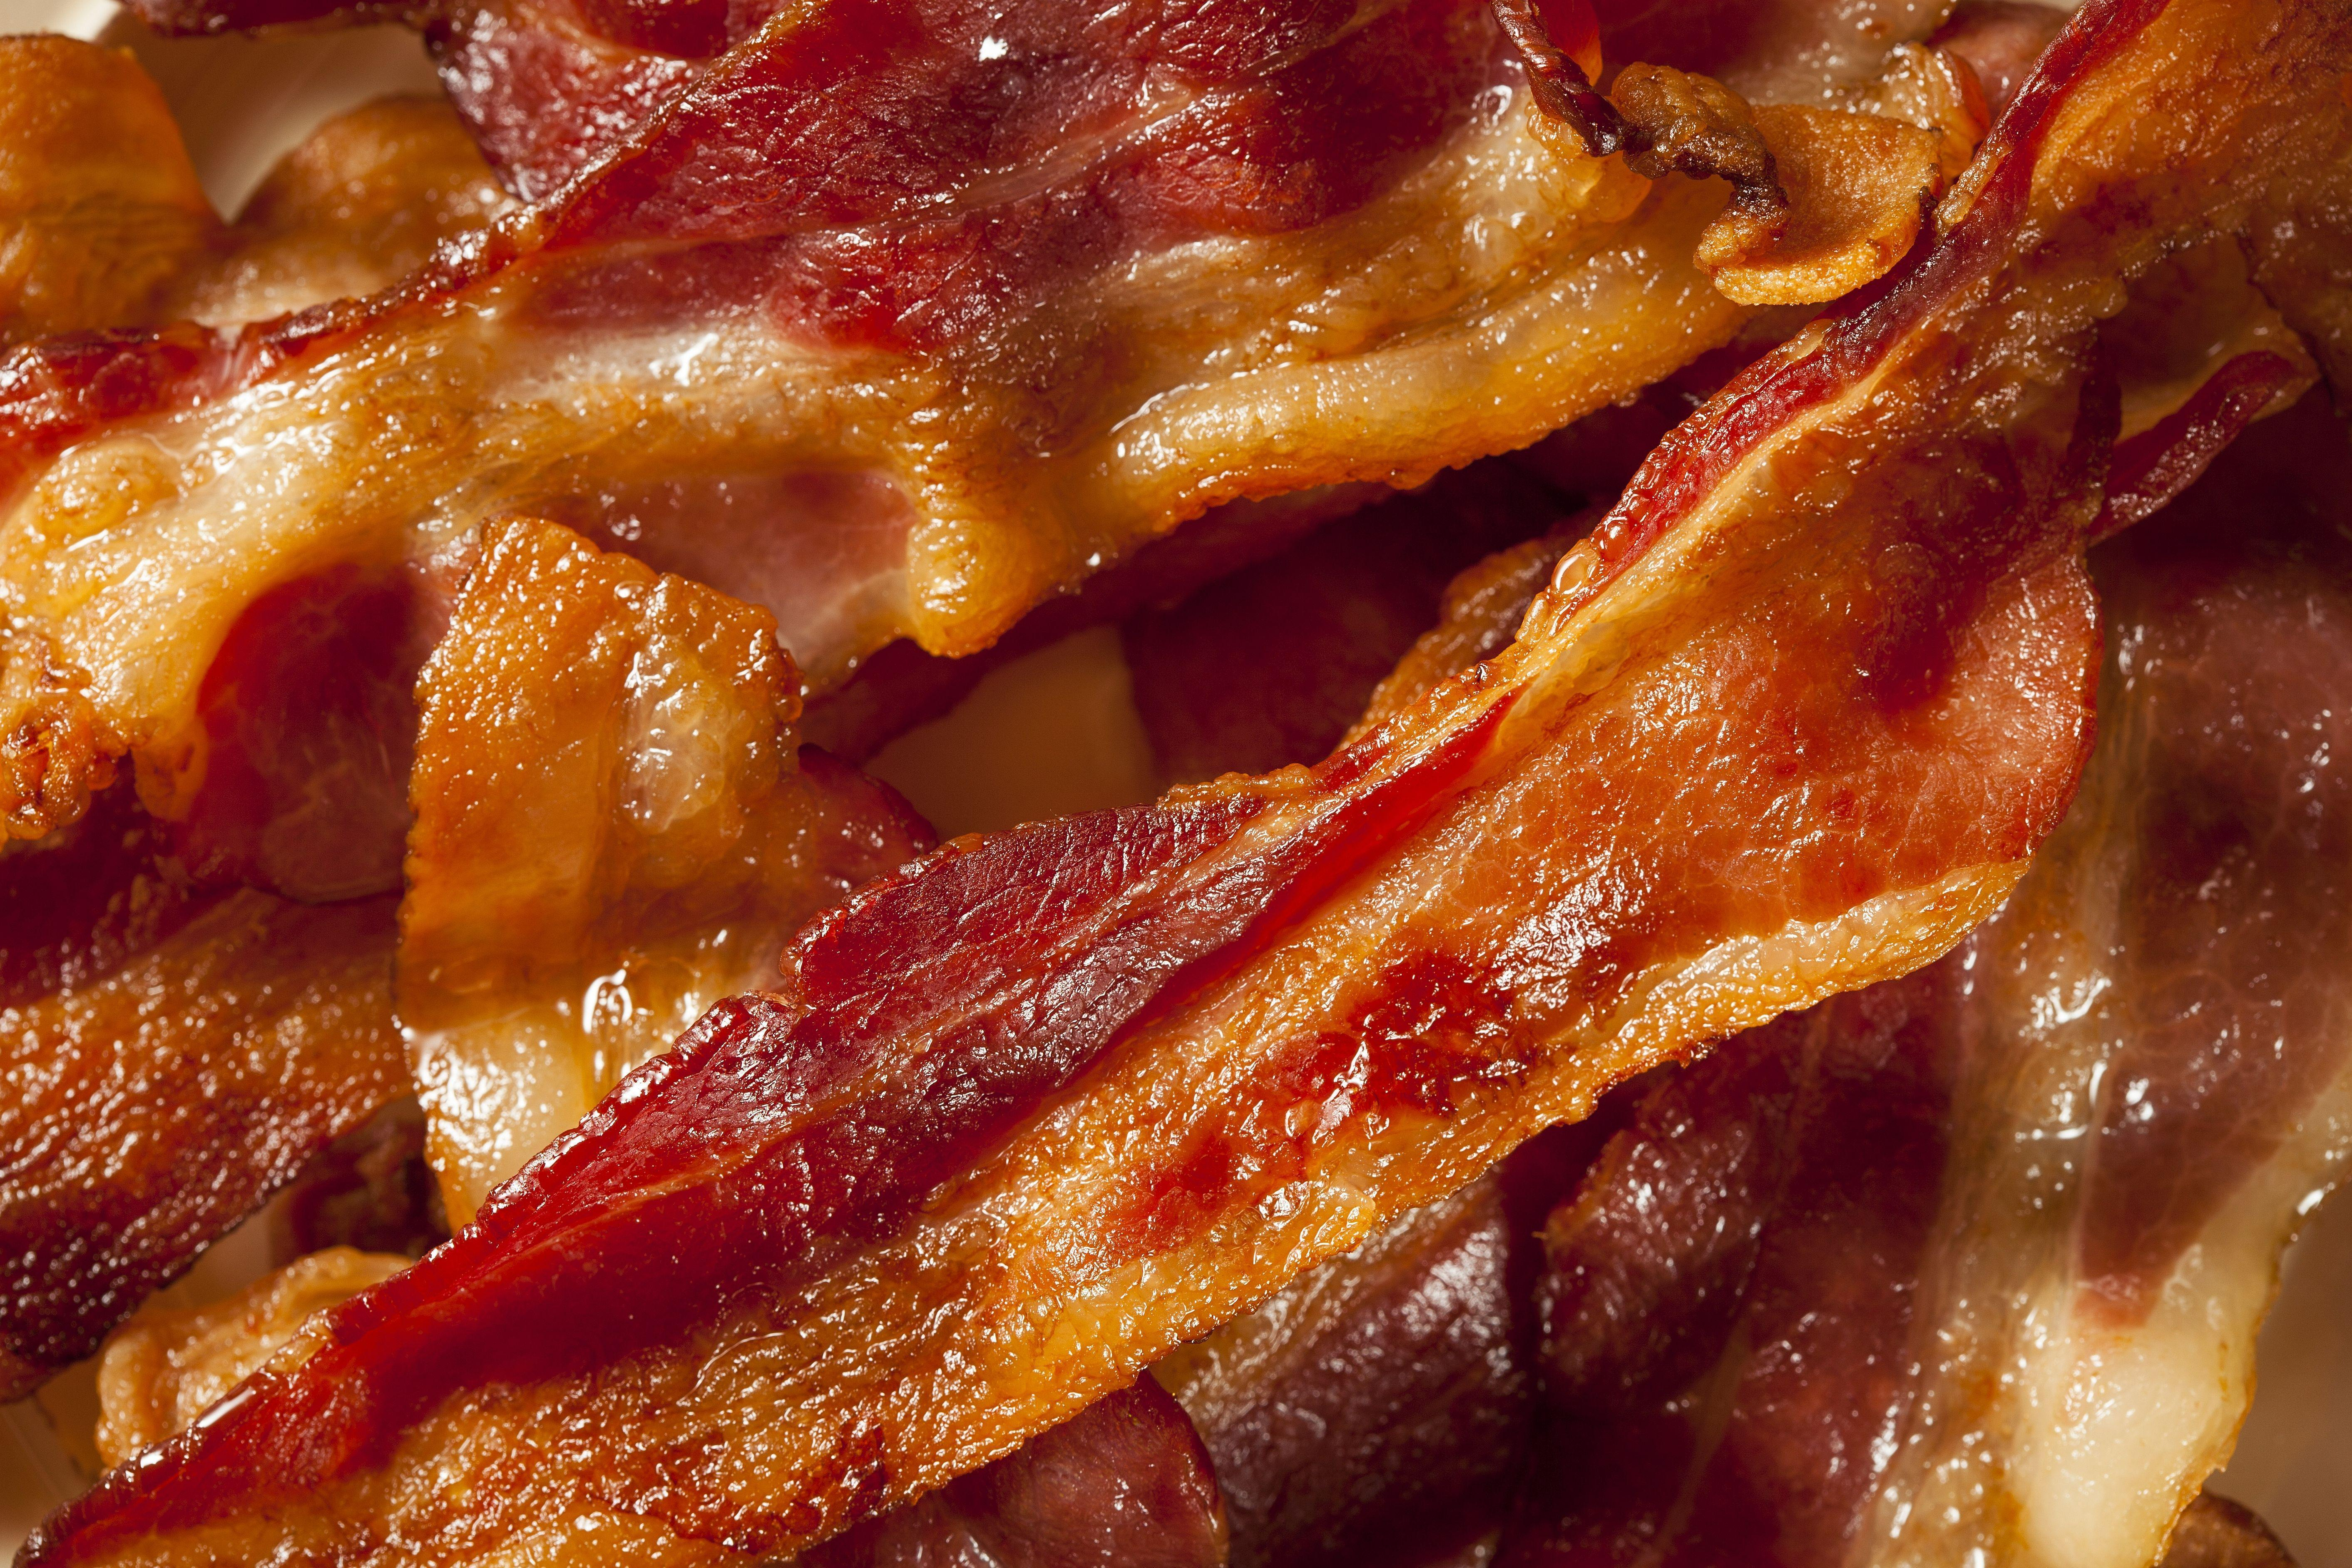 Bacon Wallpapers Wallpaper Cave HD Wallpapers Download Free Images Wallpaper [1000image.com]